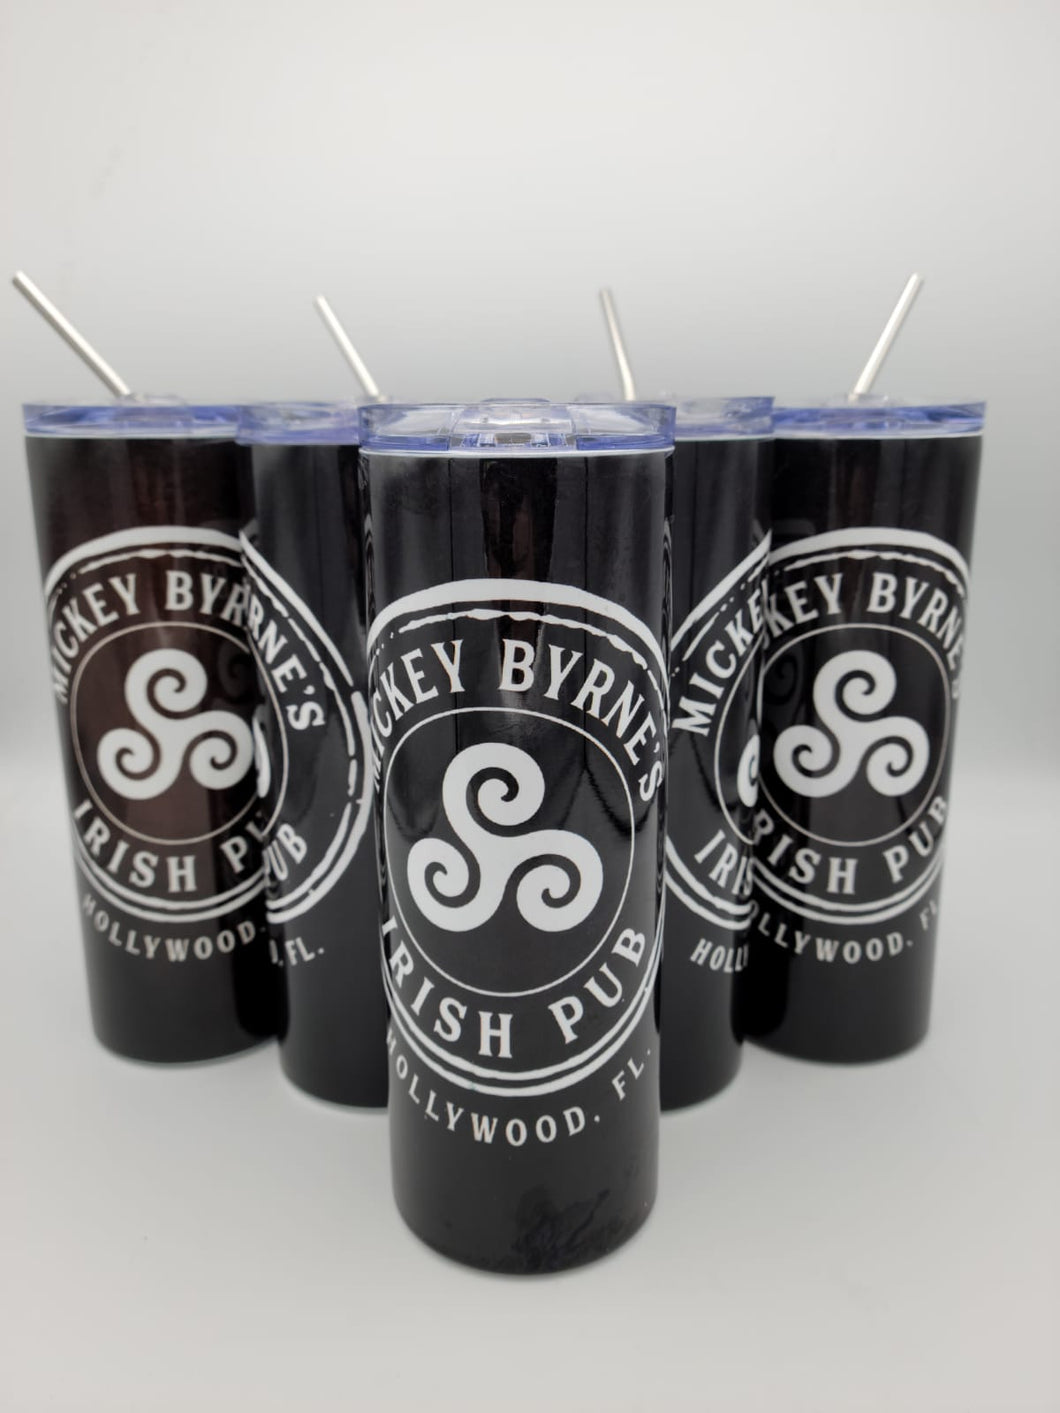 Personalized Mickey Byrne's 20 Ounce Stainless Steel Logo Tumbler with Lid and Metal Straw